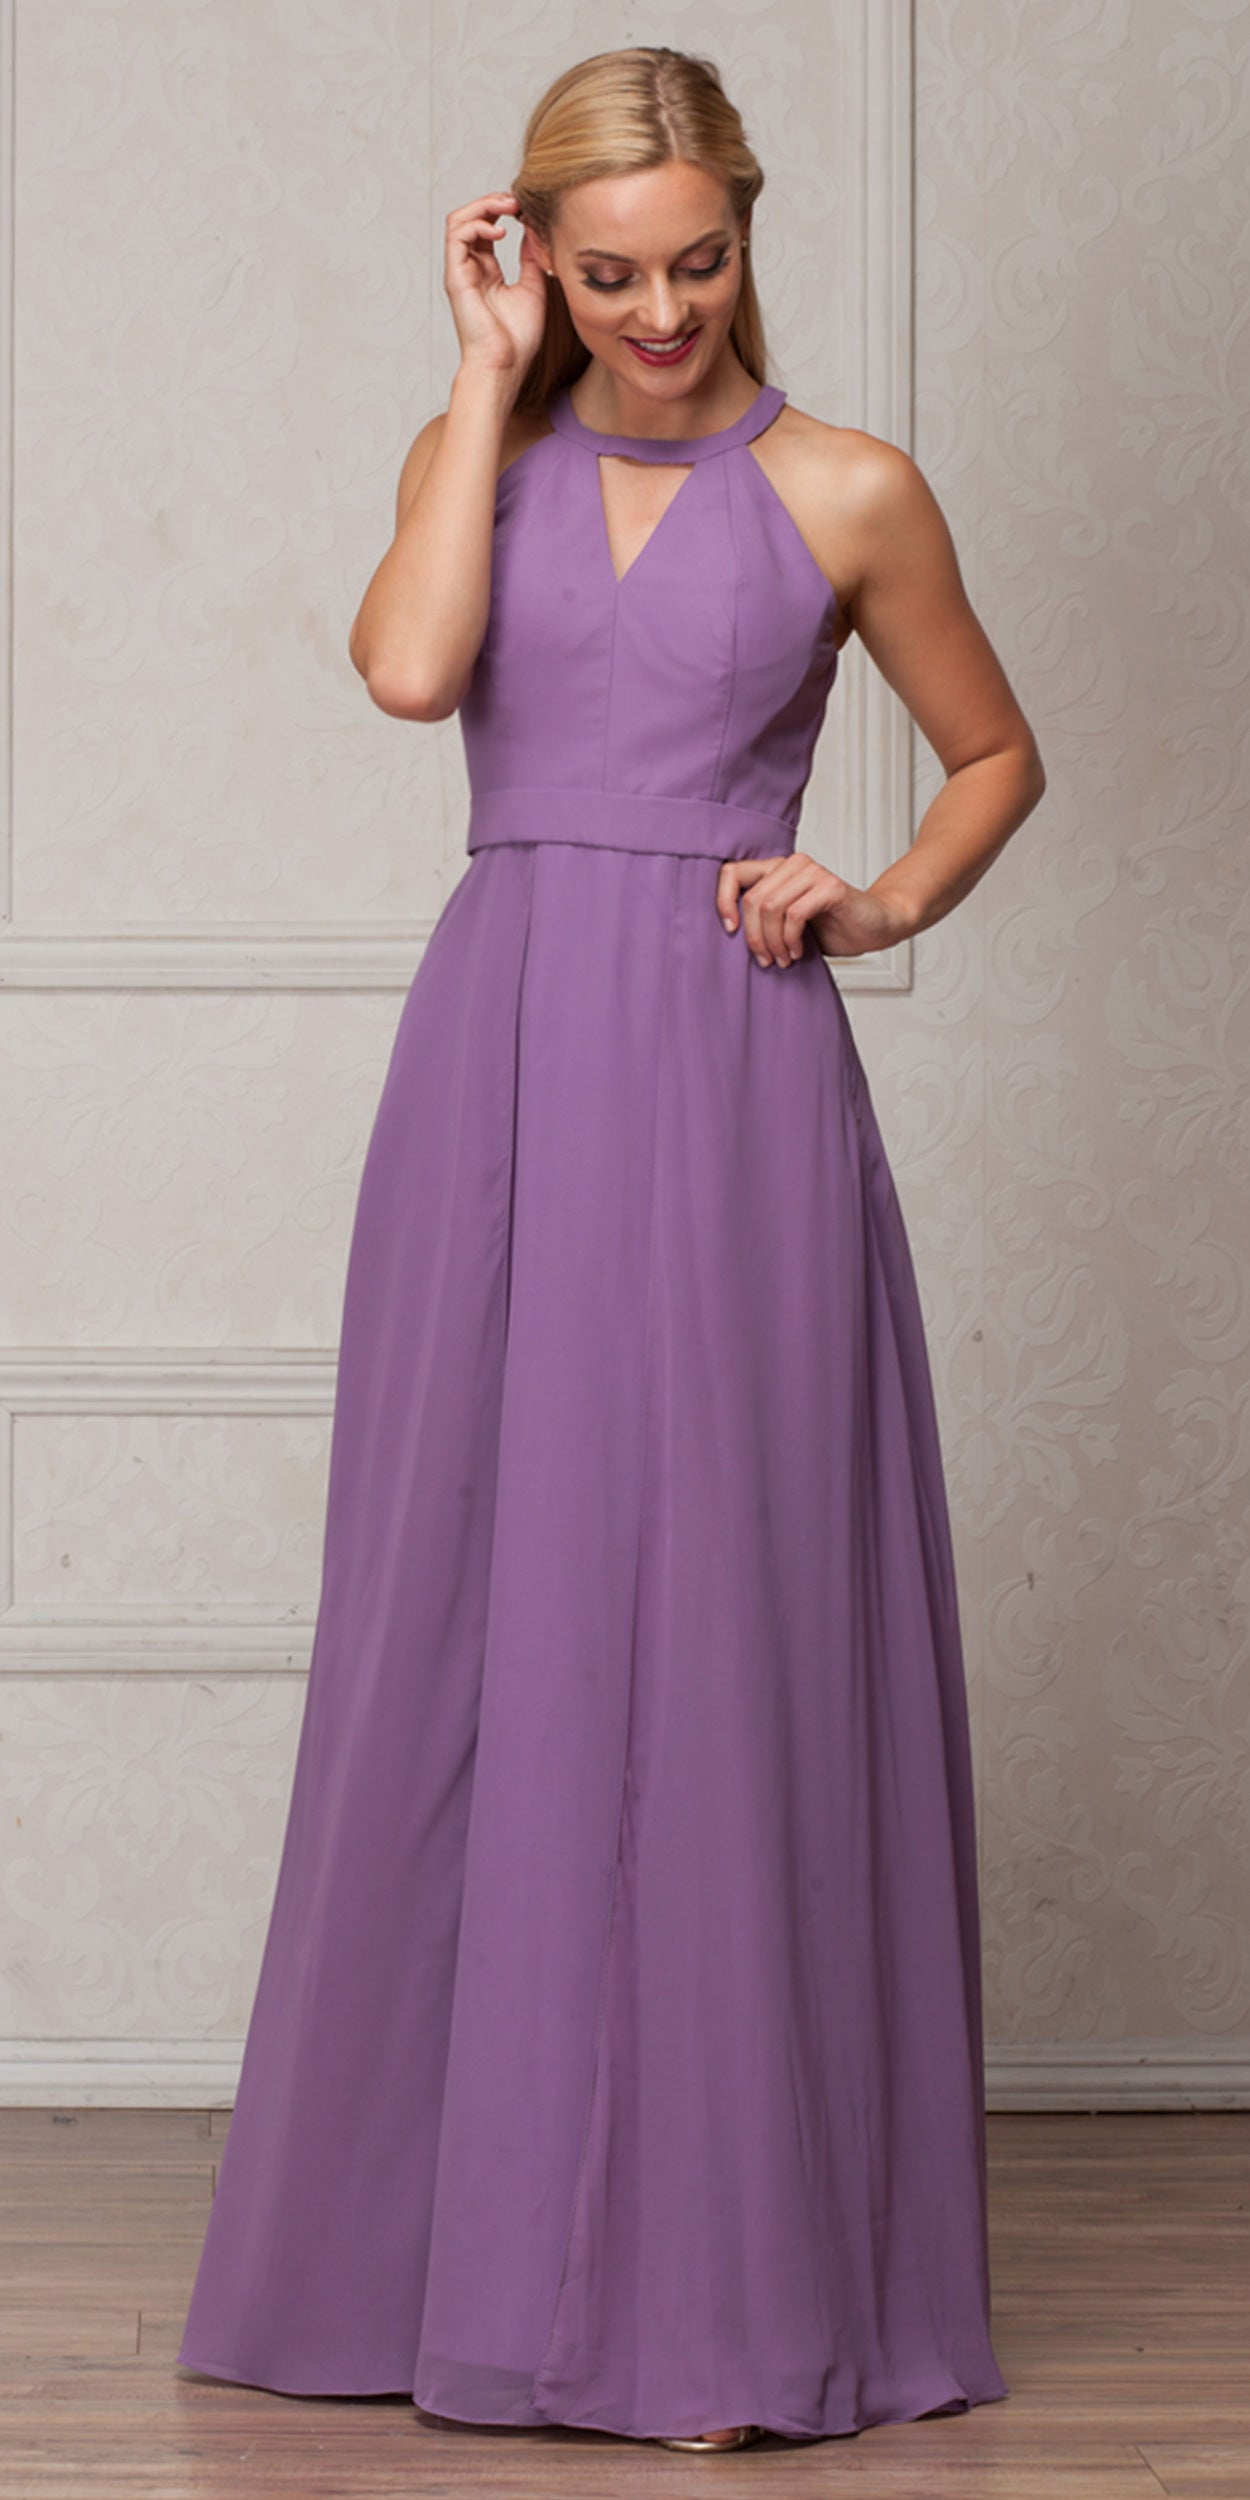 Image of High Round Neck Princess Cut Long Bridesmaid Dress in Lavender